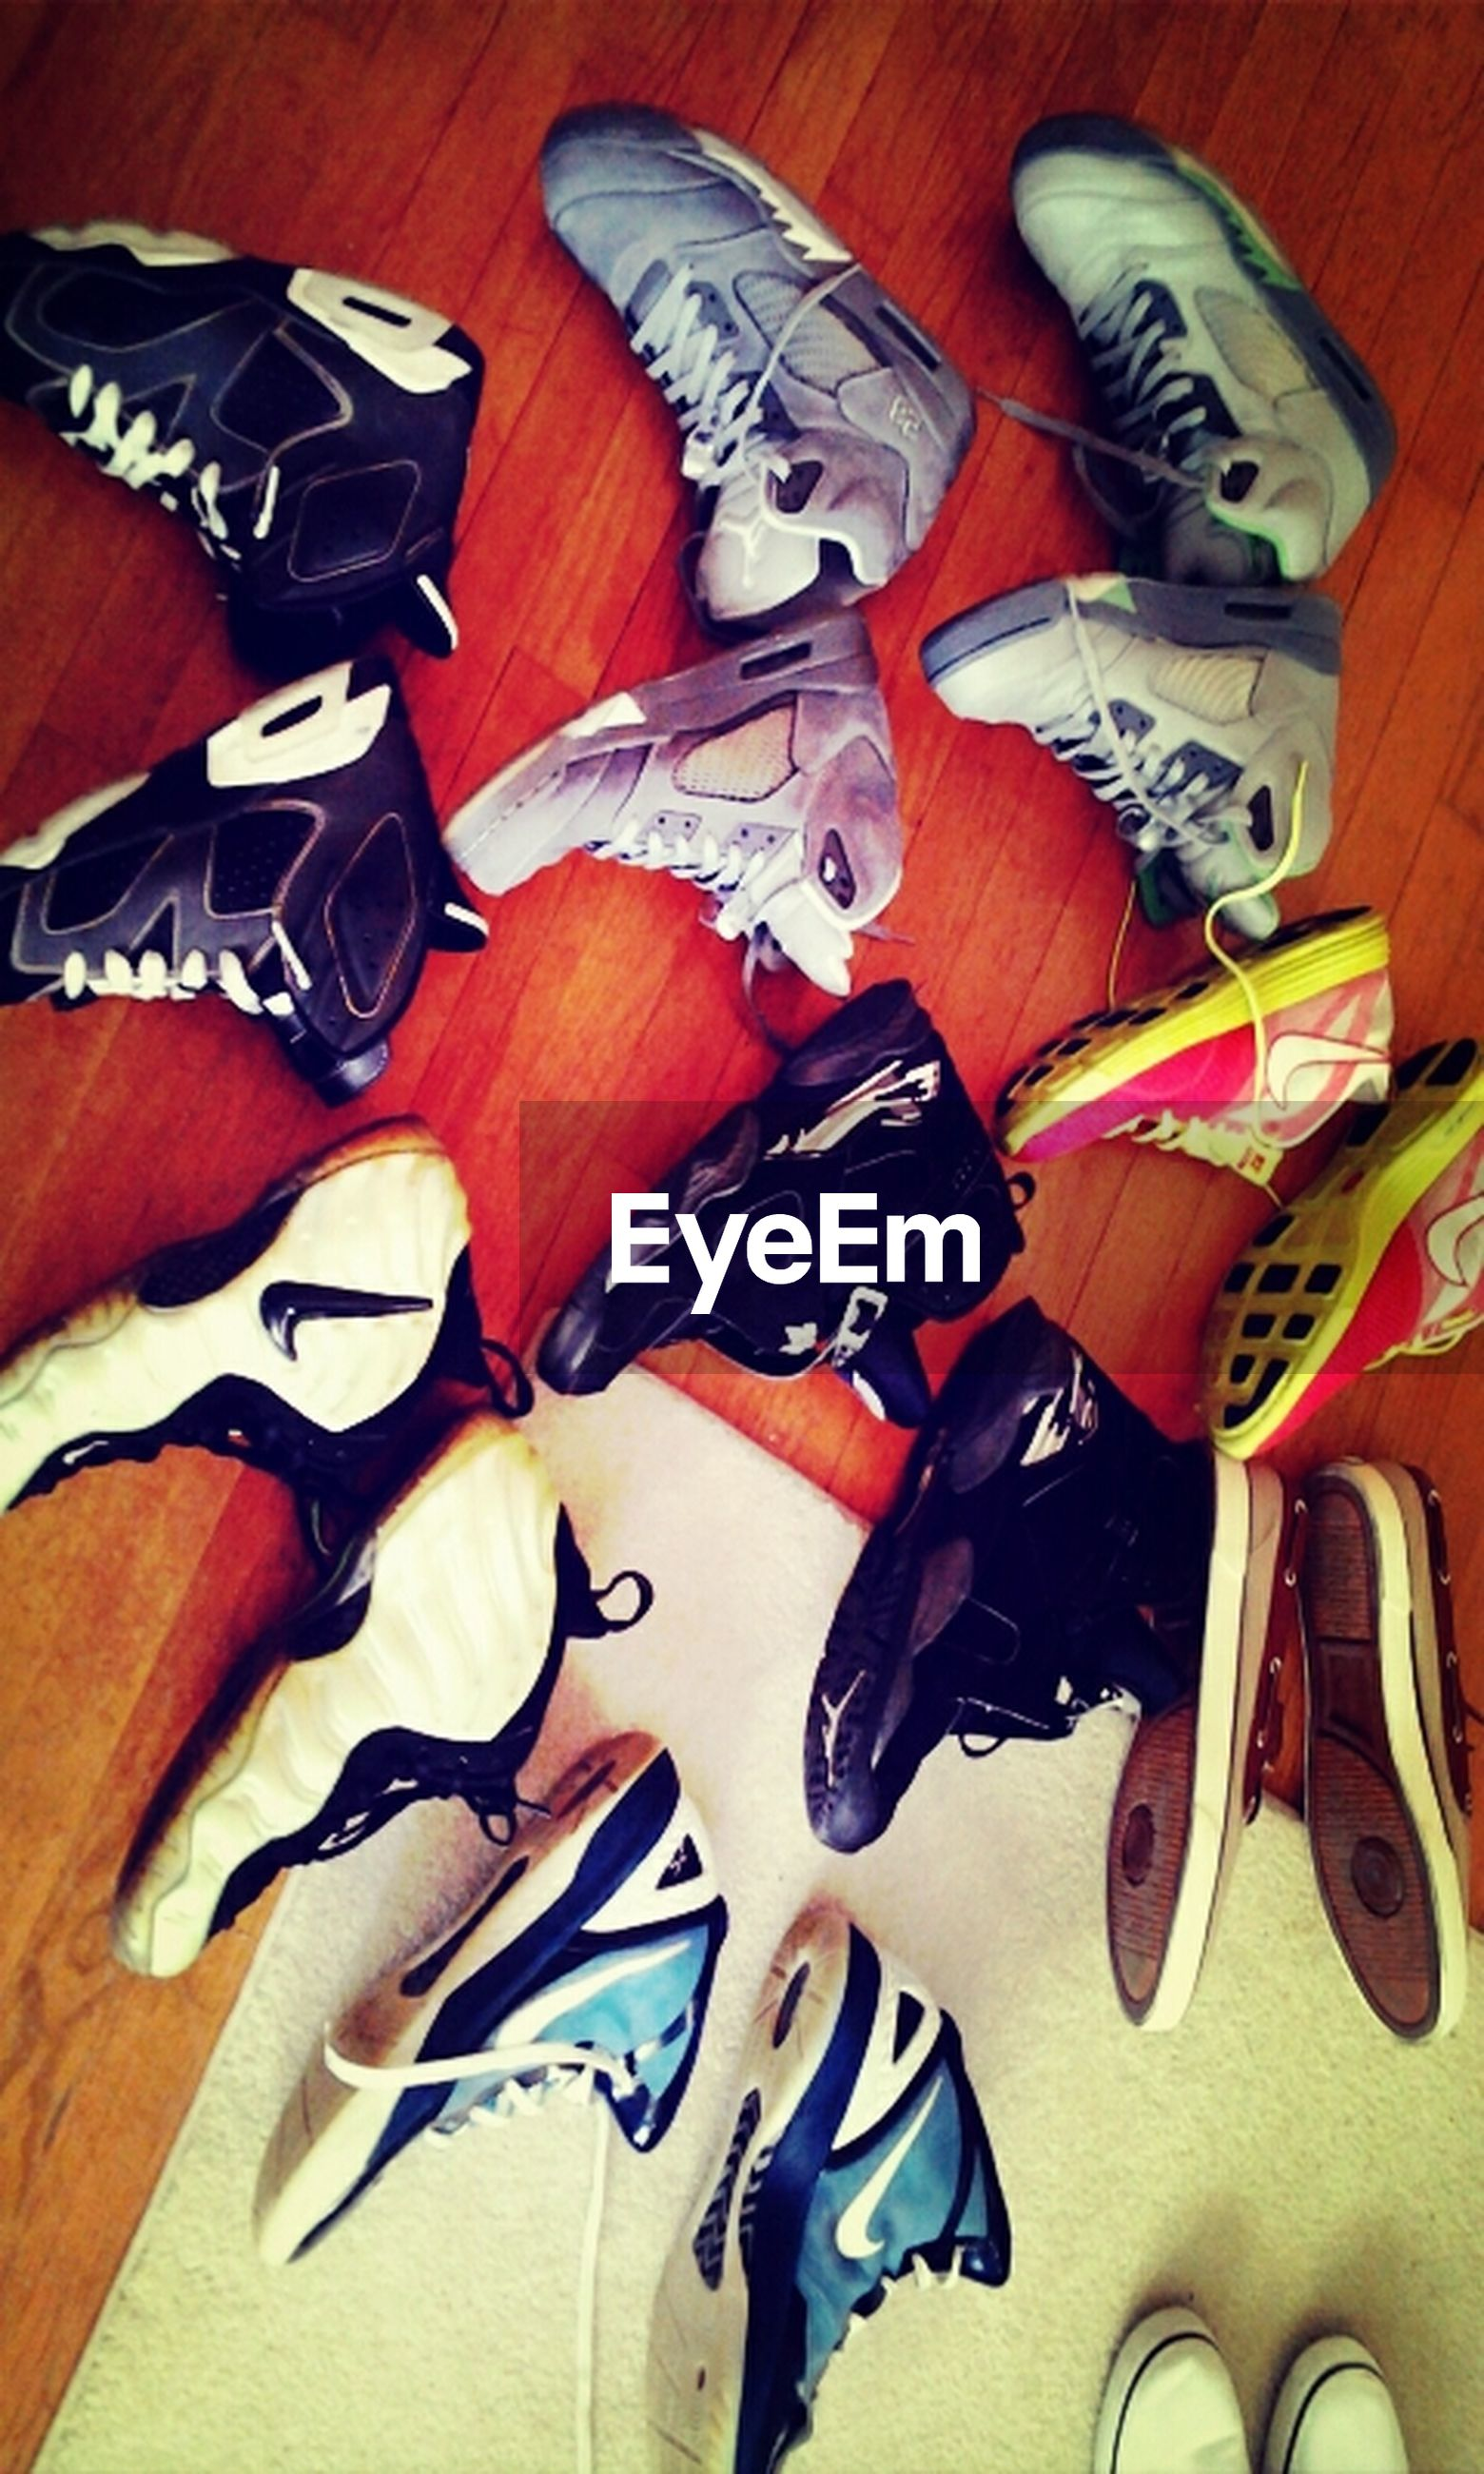 indoors, high angle view, variation, shoe, still life, large group of objects, arrangement, in a row, table, choice, abundance, pair, multi colored, directly above, footwear, side by side, no people, flooring, art and craft, close-up